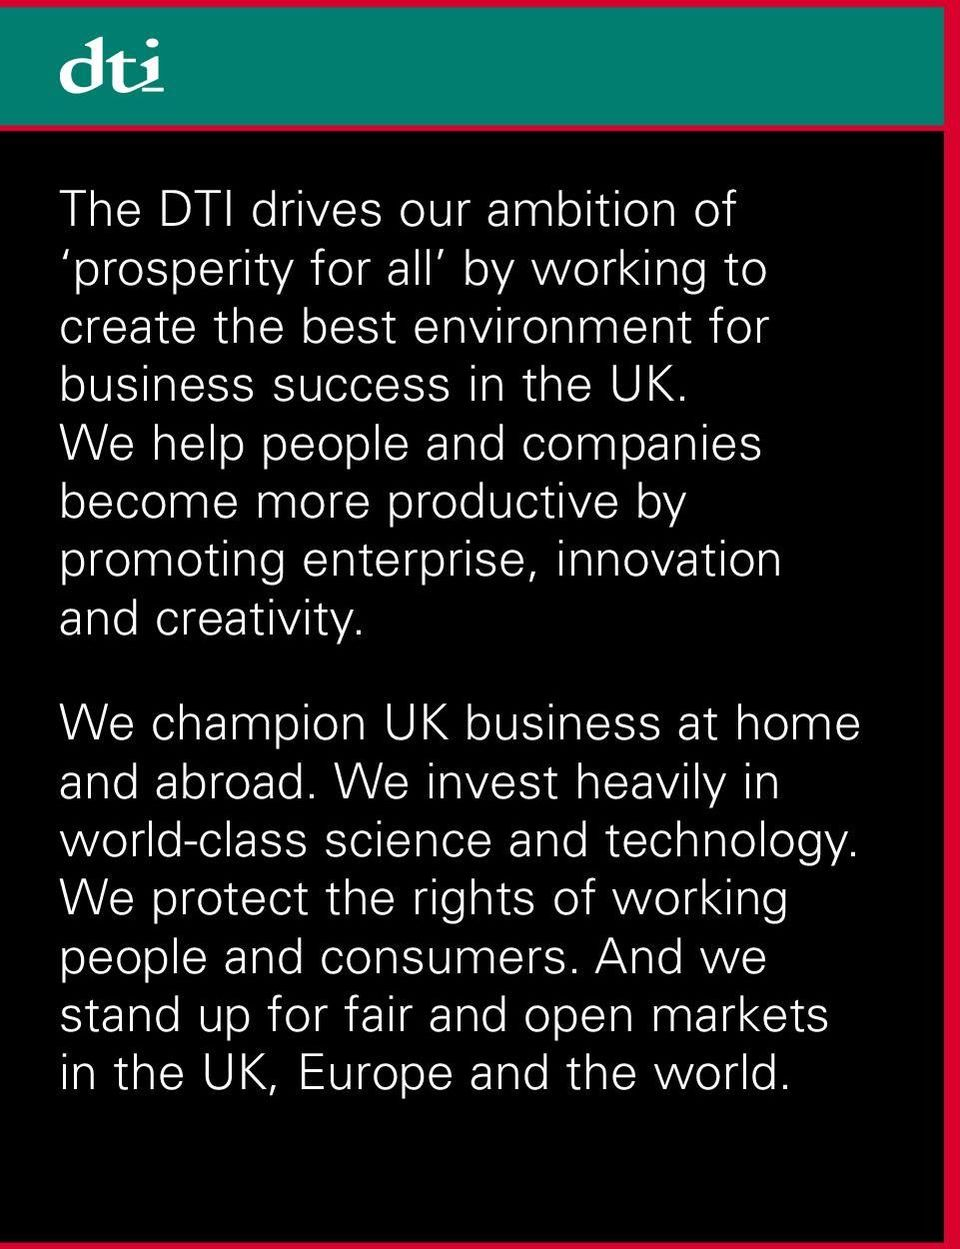 We champion UK business at home and abroad. We invest heavily in world-class science and technology.